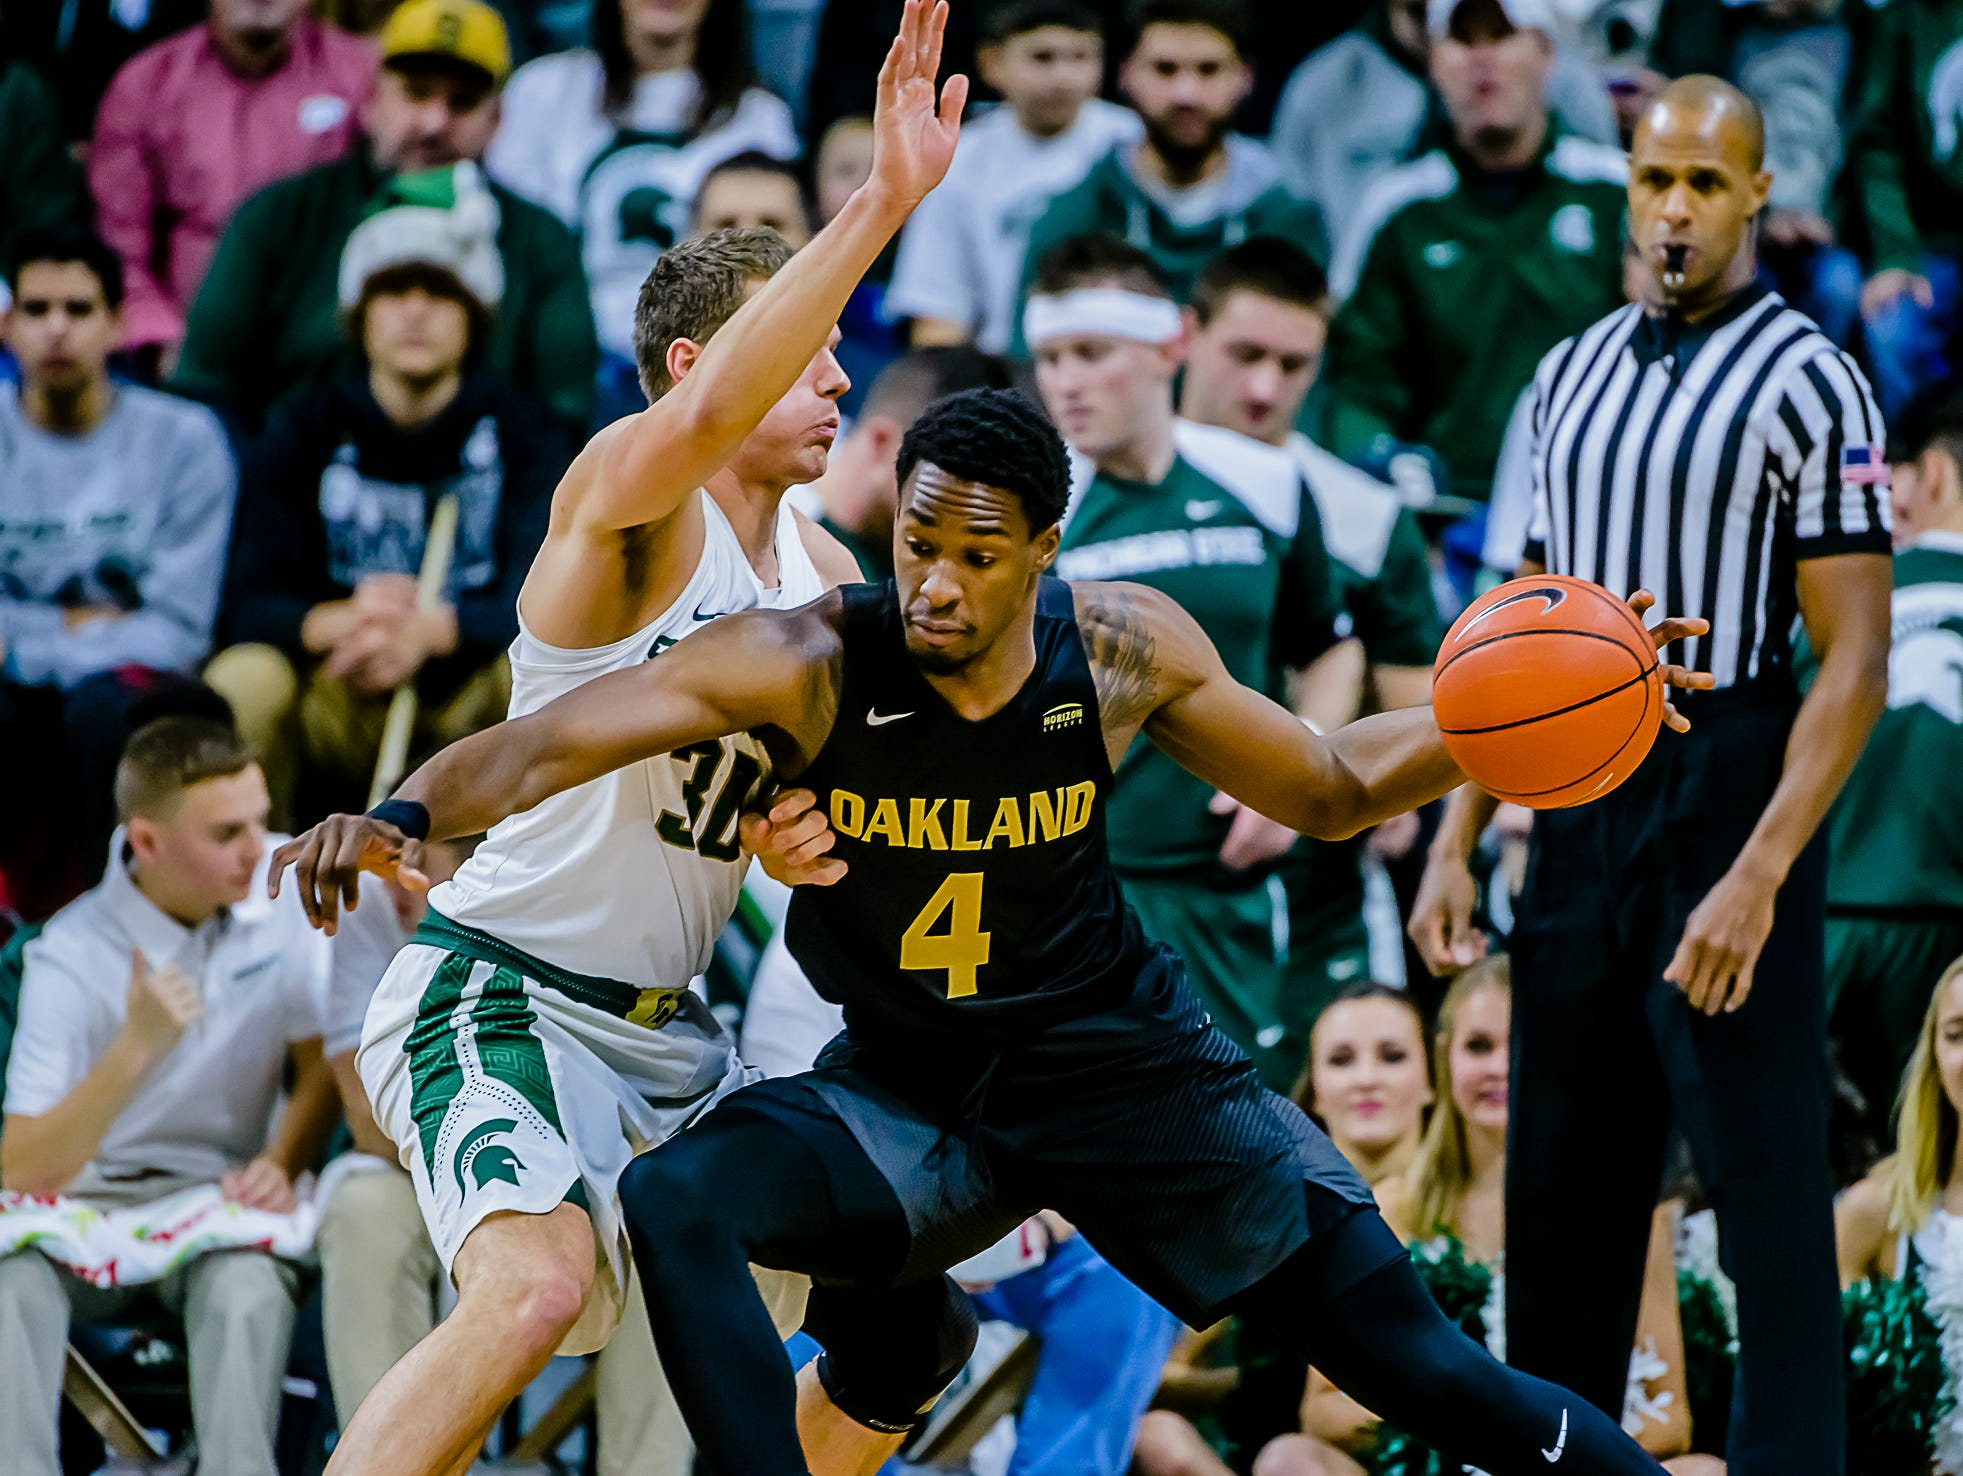 Oakland's Jalen Hayes, a Lansing Sexton alum, drives to the basket before scoring over MSU's Matt Van Dyk early on during their game Wednesday night at Breslin Center.